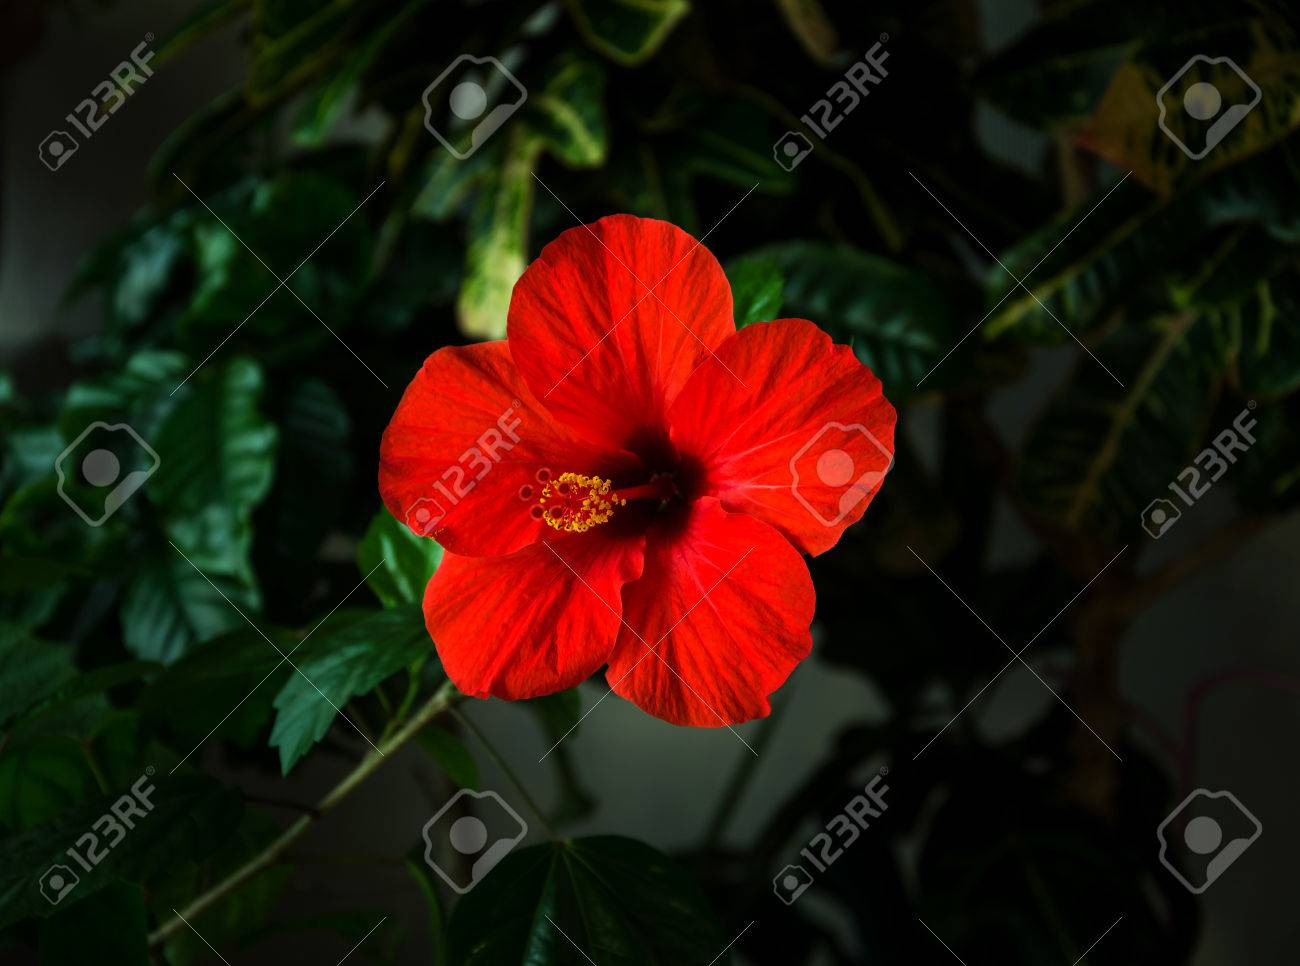 Red Hibiscus Flower With A Pestle Stamens And Green Leaves On